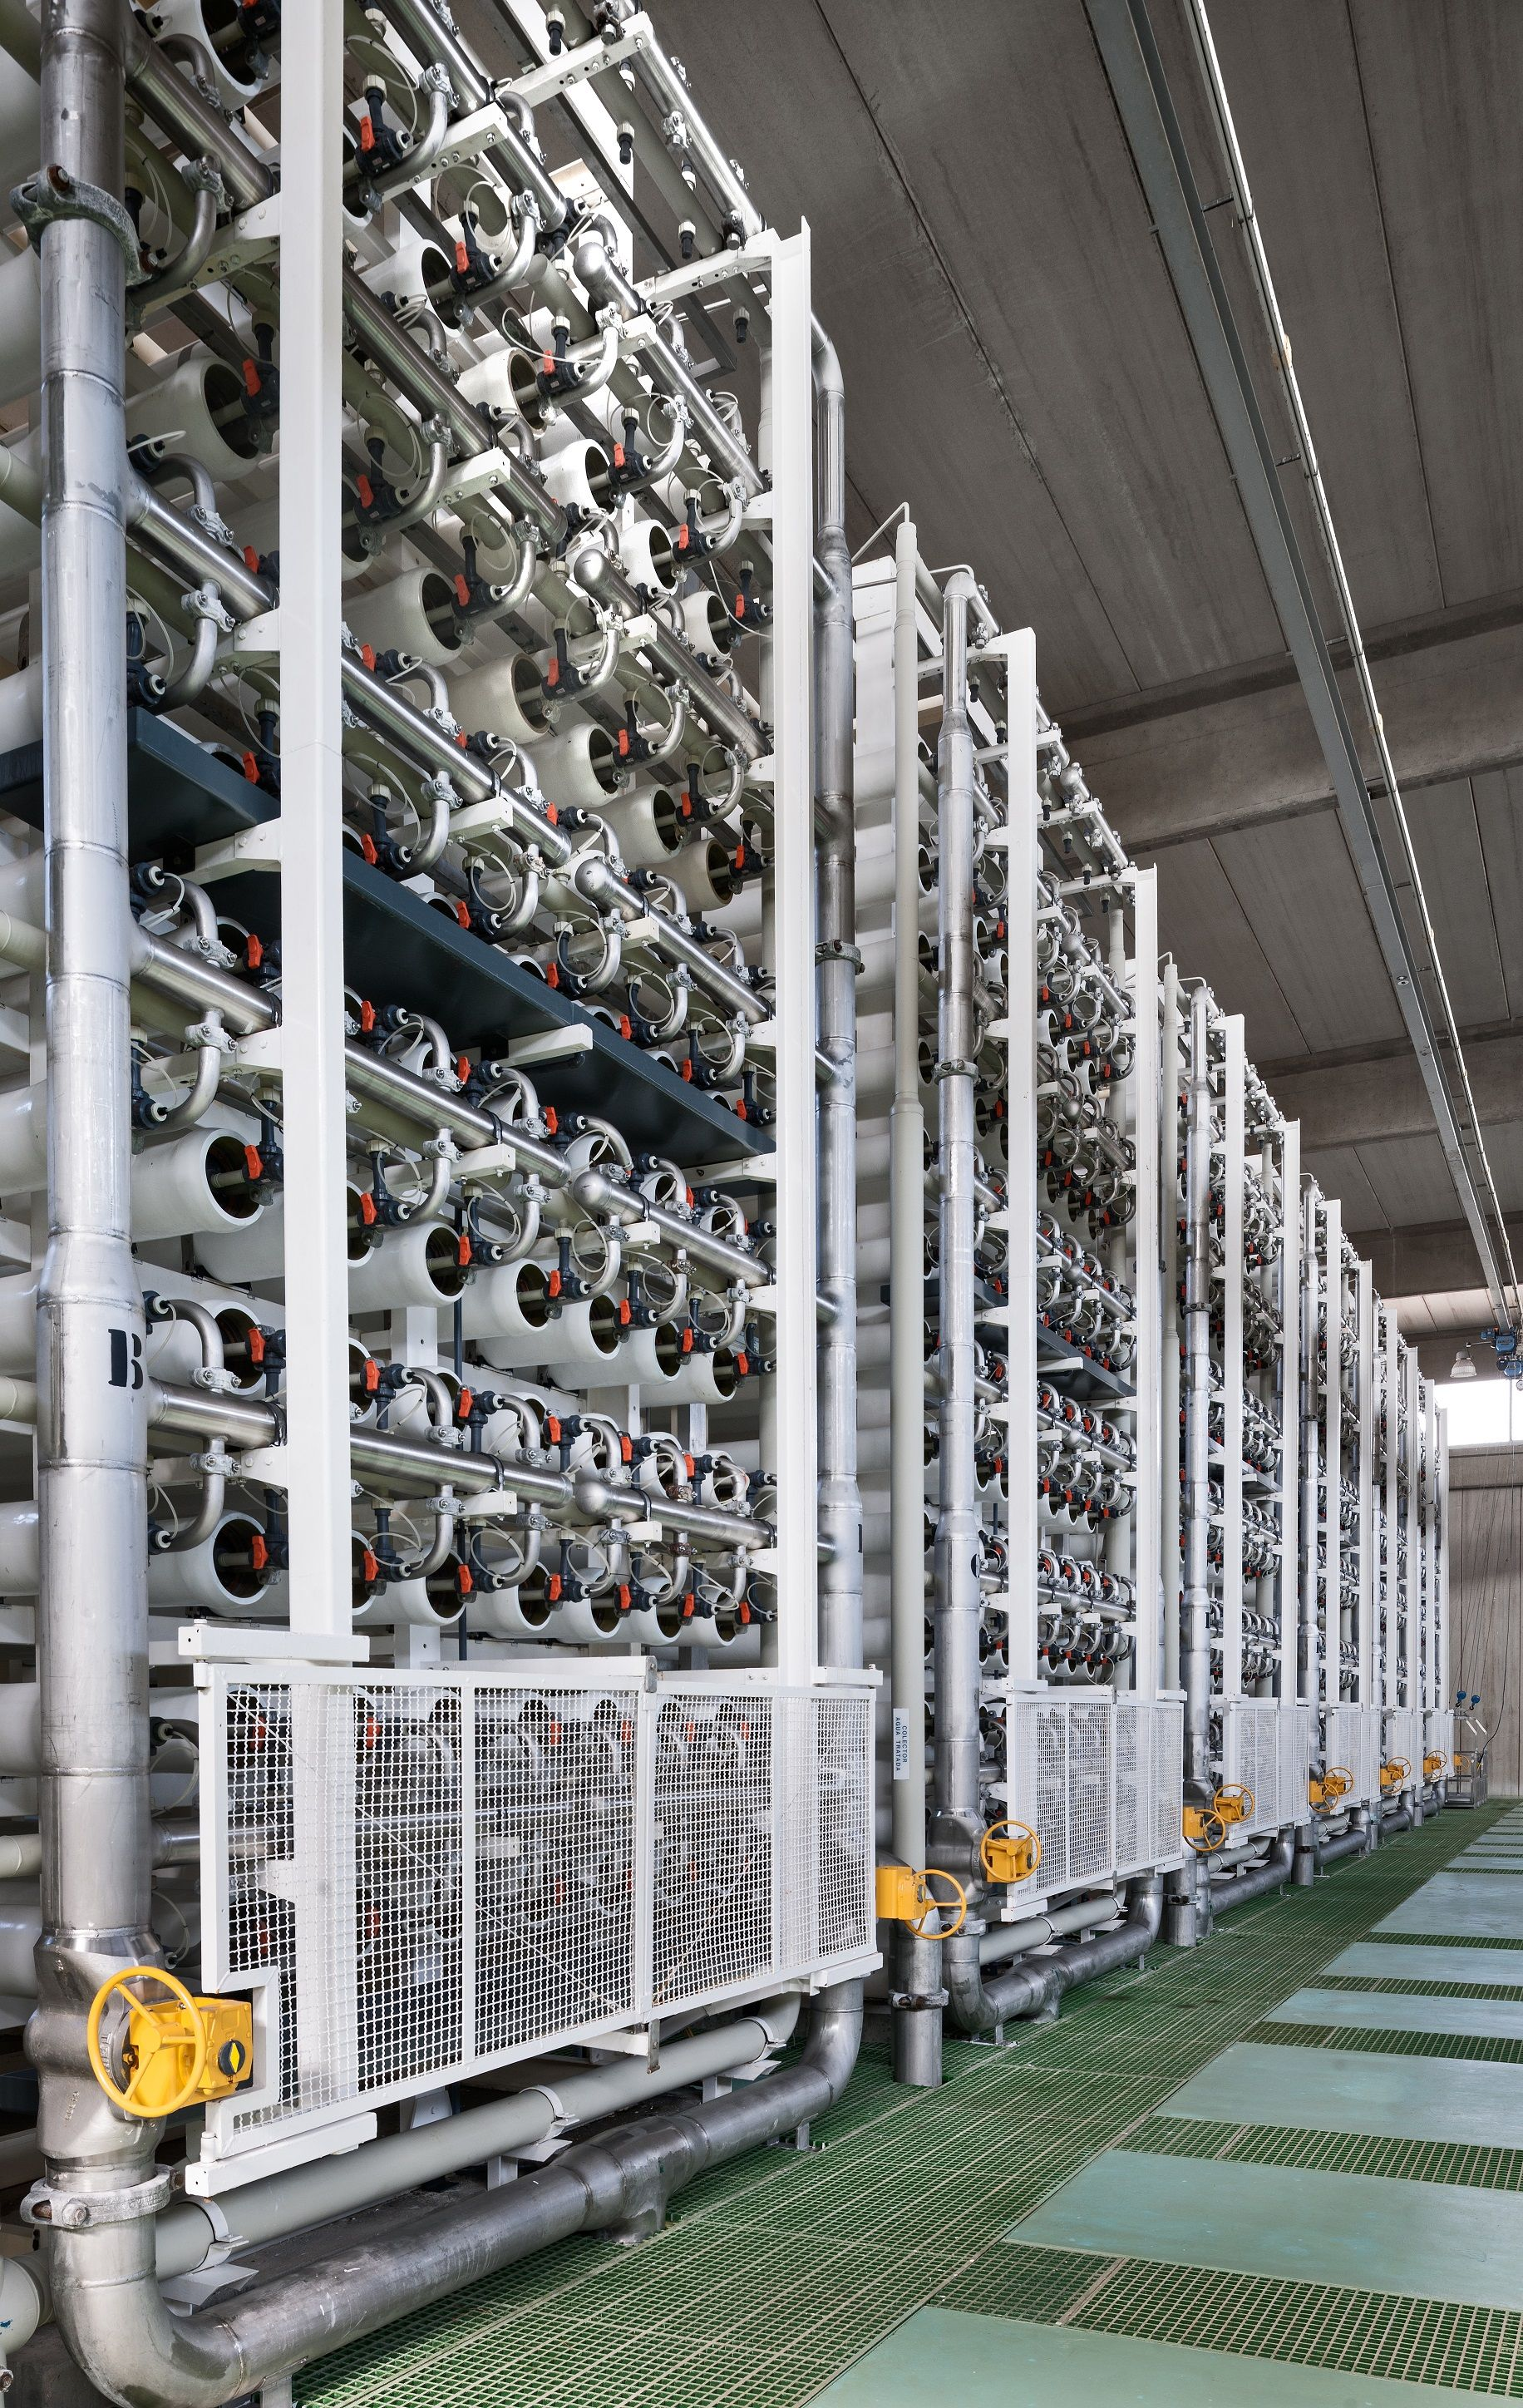 Reverse osmosis membranes in the Qingdao desalination plant